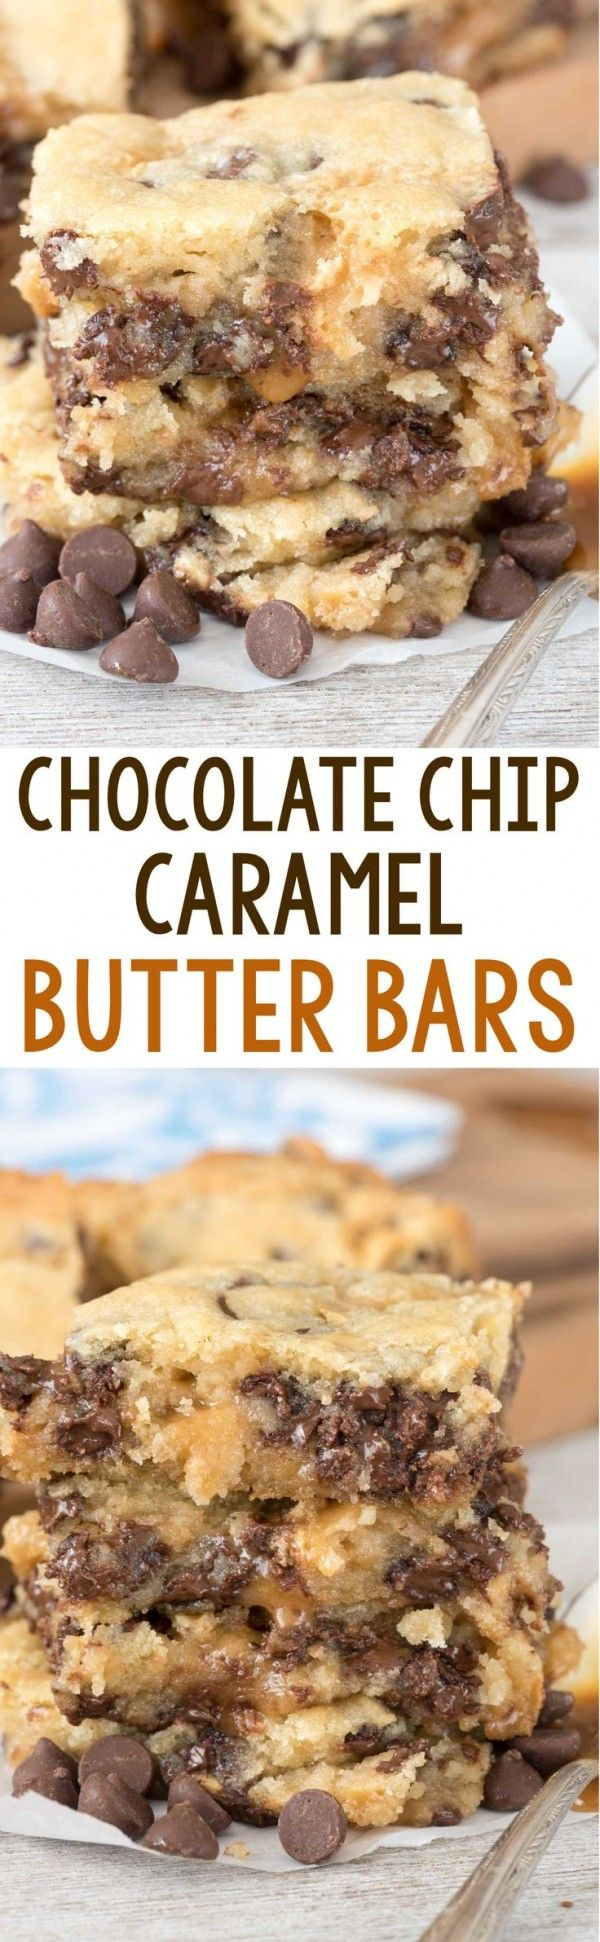 Get the recipe ♥ Chocolate Chip Caramel Butter Bars #besttoeat @recipes_to_go